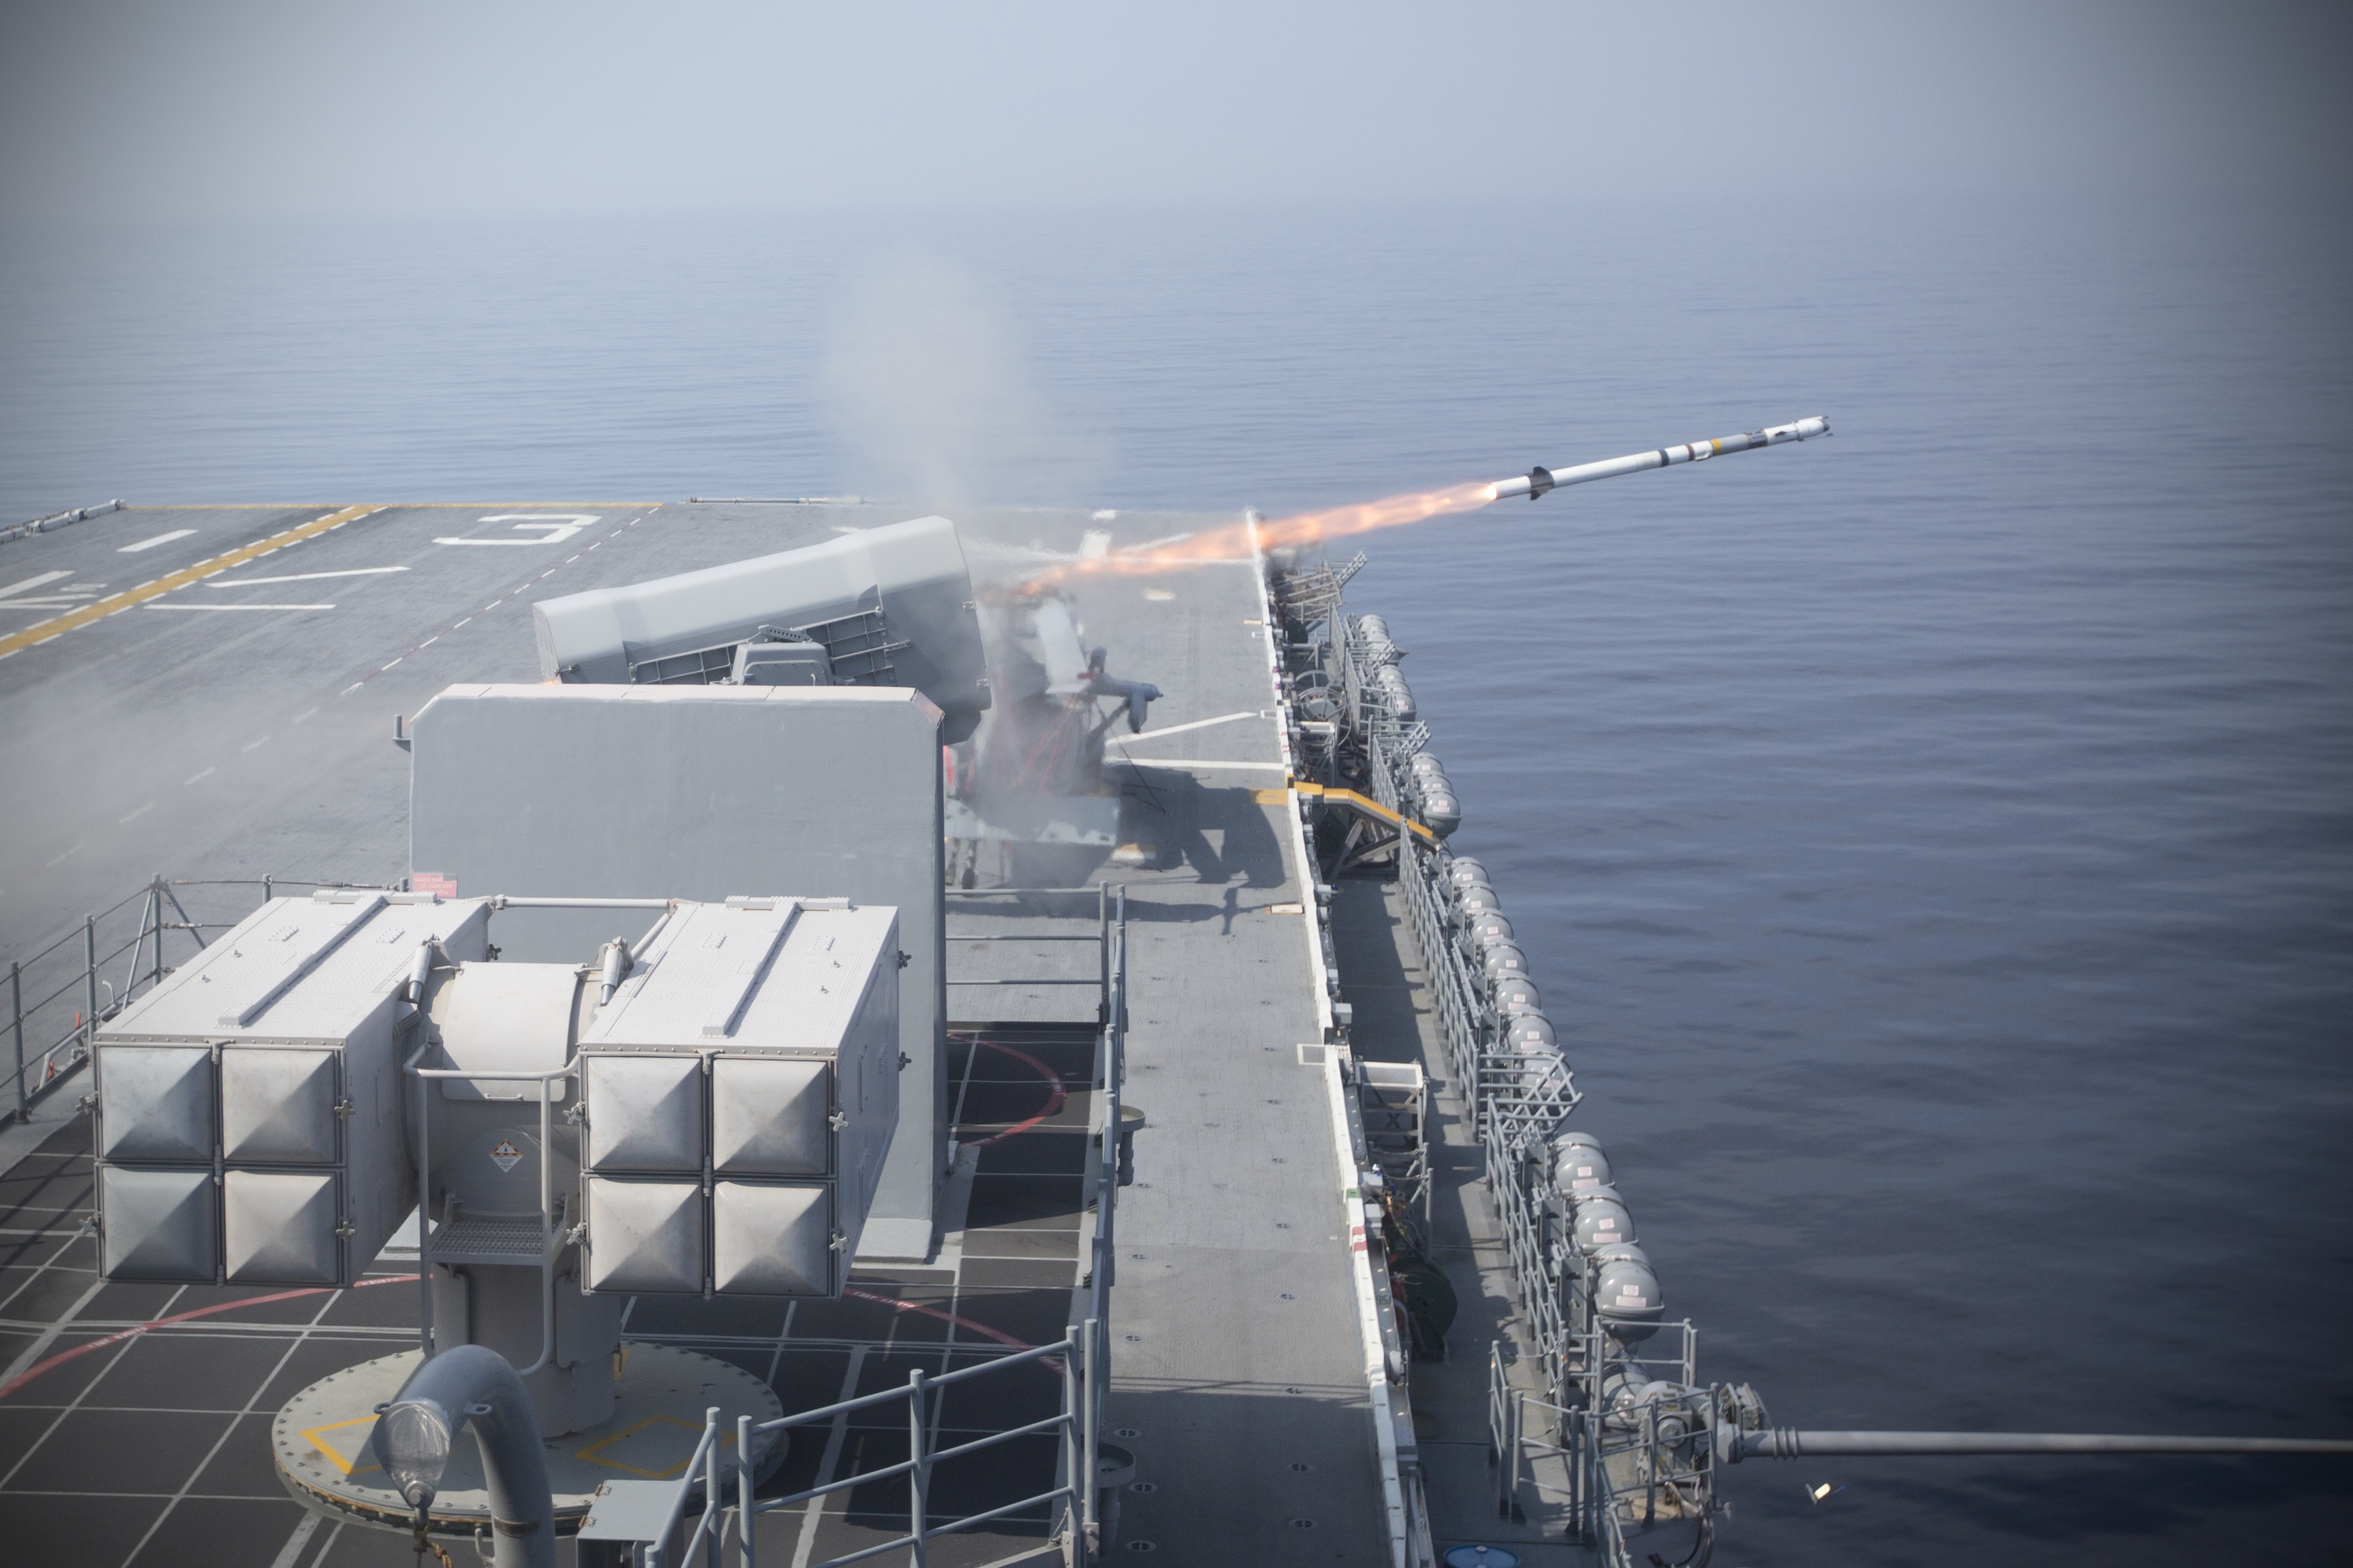 The amphibious assault ship USS Kearsarge (LHD 3) fires a rolling airframe missile during a missile exercise on June 14, 2015. US Navy photo.